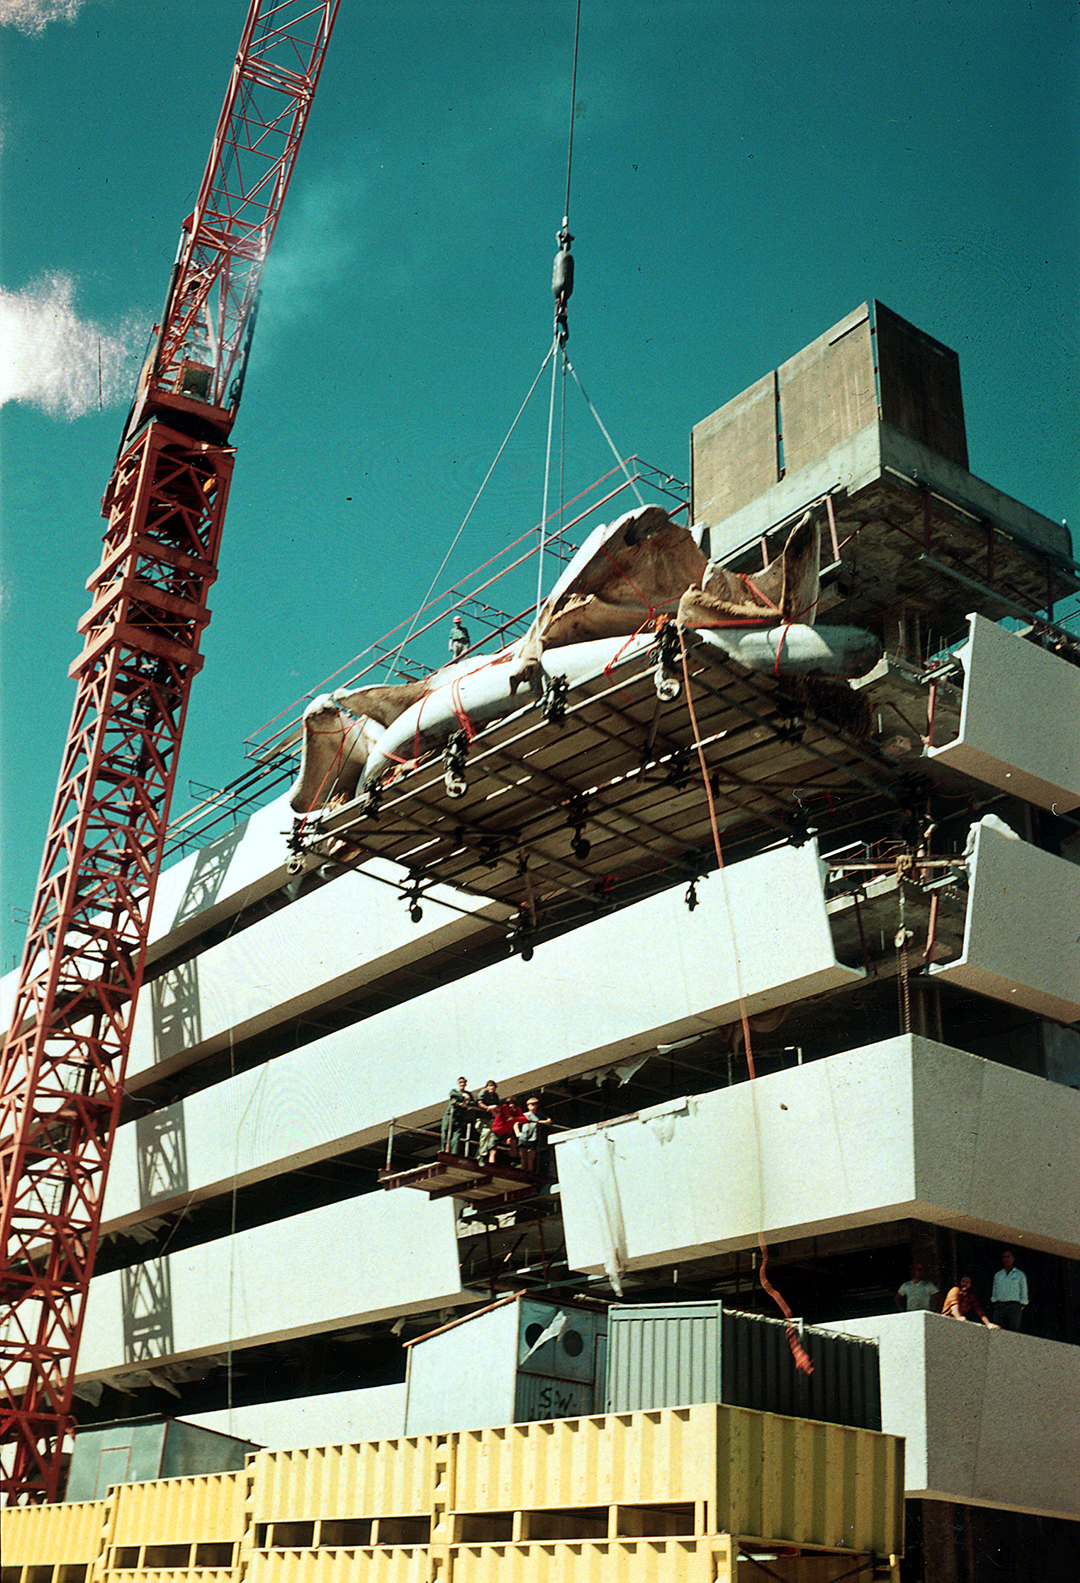 A large crant lifts a heavy load up toward a building under construction.